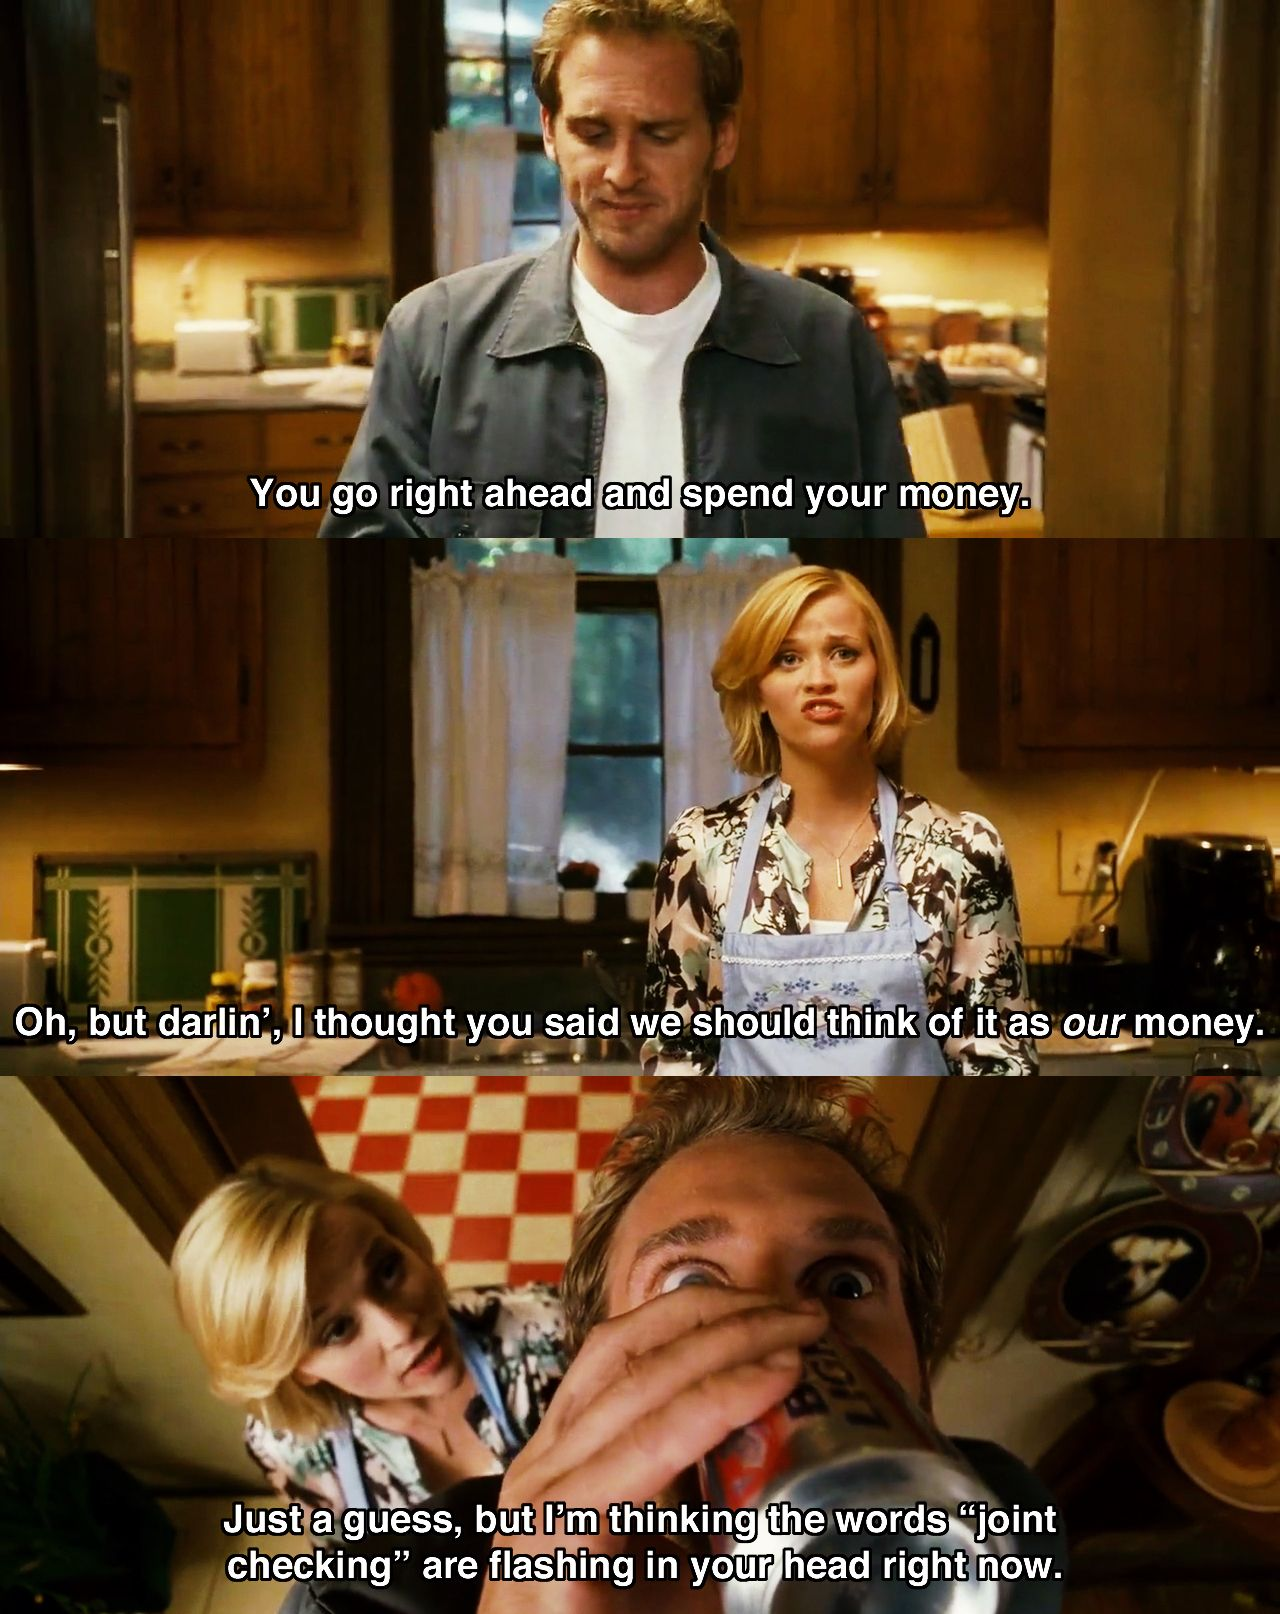 May 01, 2021· the sweet home alabama meme, more specifically, borders on incest. Let S Go To The Movies Photo Home Movie Quotes Sweet Home Alabama Movie Movie Quotes